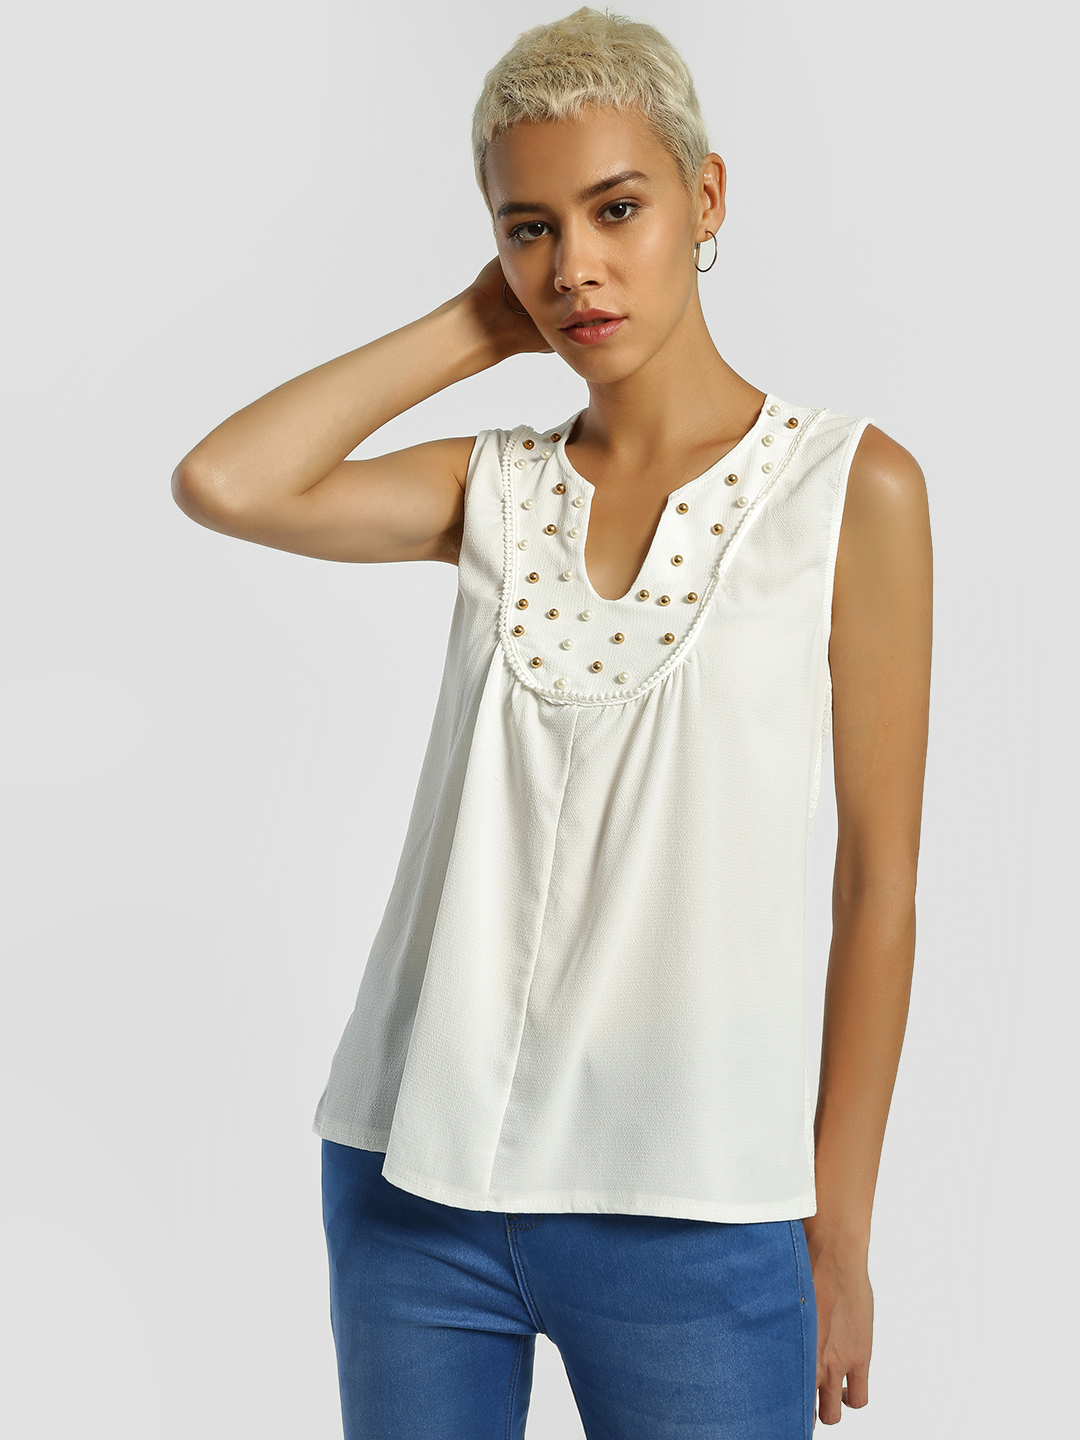 Privy League White Pearl Embellished Sleeveless Top 1